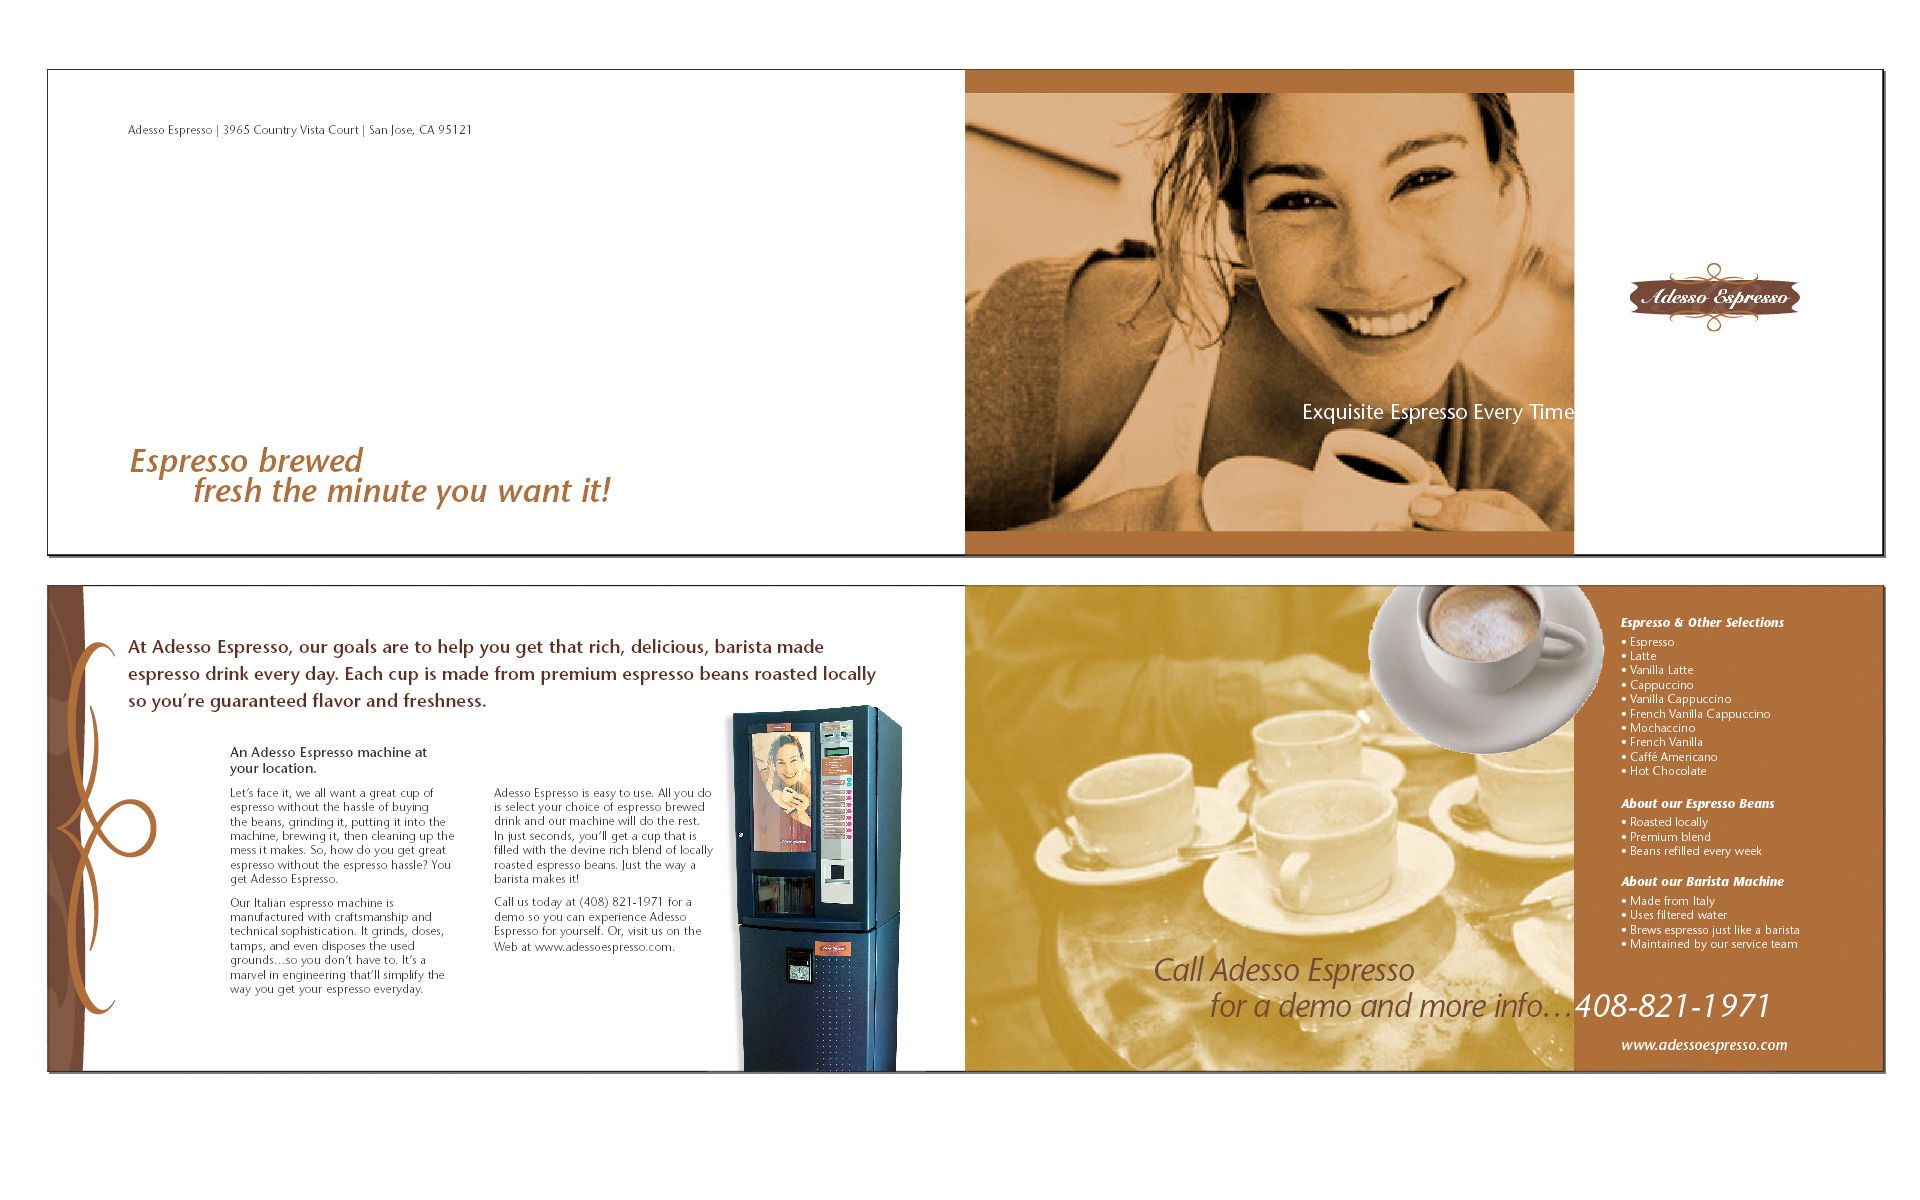 The brochure's function is to let companies and facilities know they too can have an Adesso Espresso Machine at their location to provide Italian quality drinks to employees or visitors.